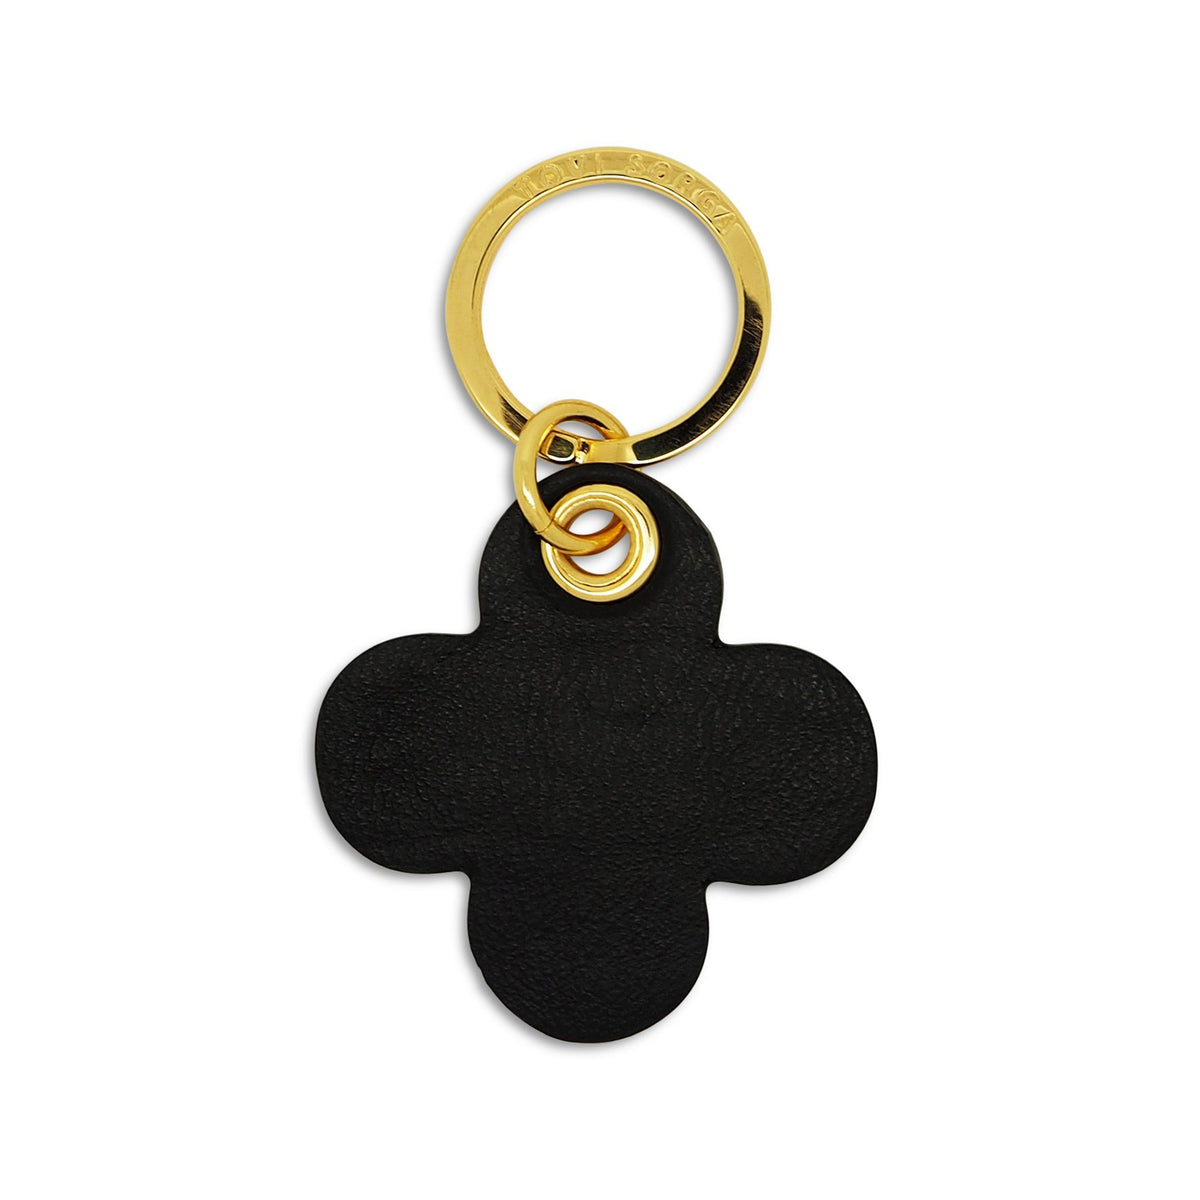 Leather Contactless Payment Key Charm - Lucky Lilac Clover Tovi Sorga